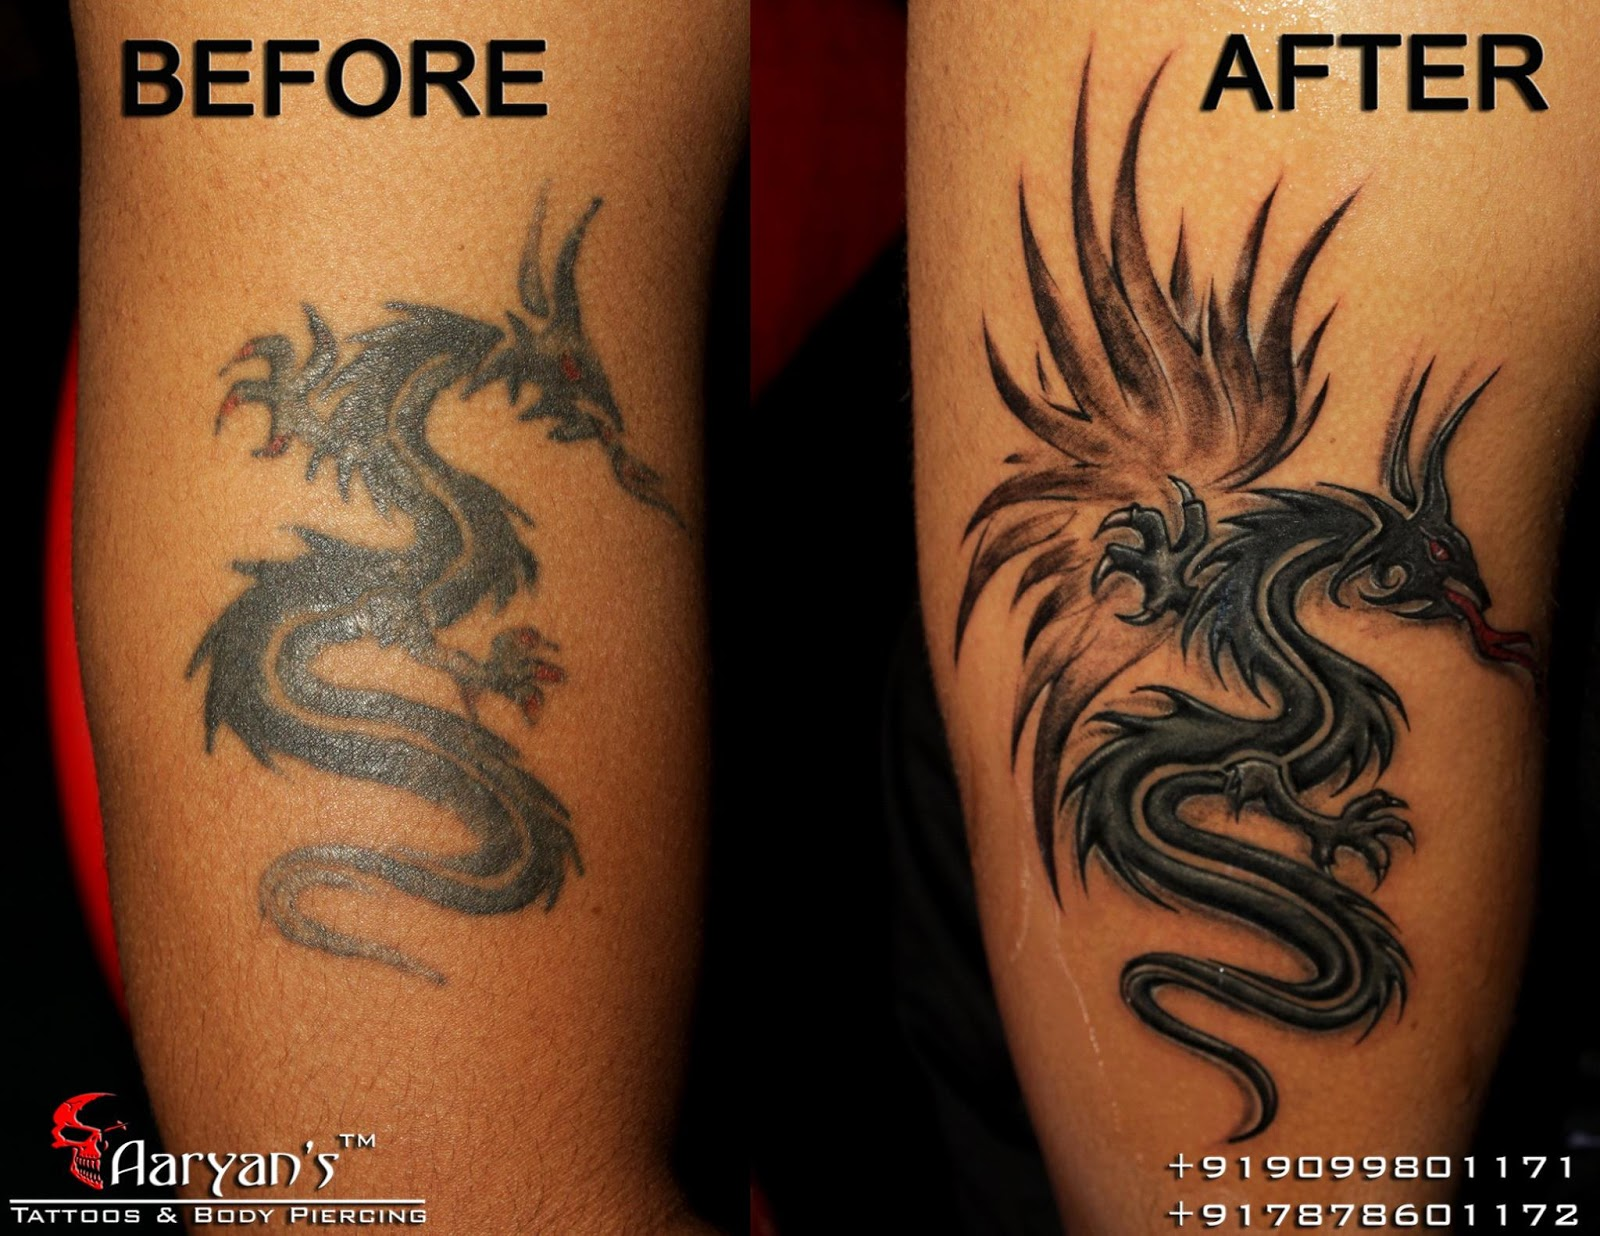 Best before after tattoo by aaryans tattoos in ahmedabad for Tattoo apprenticeship programs